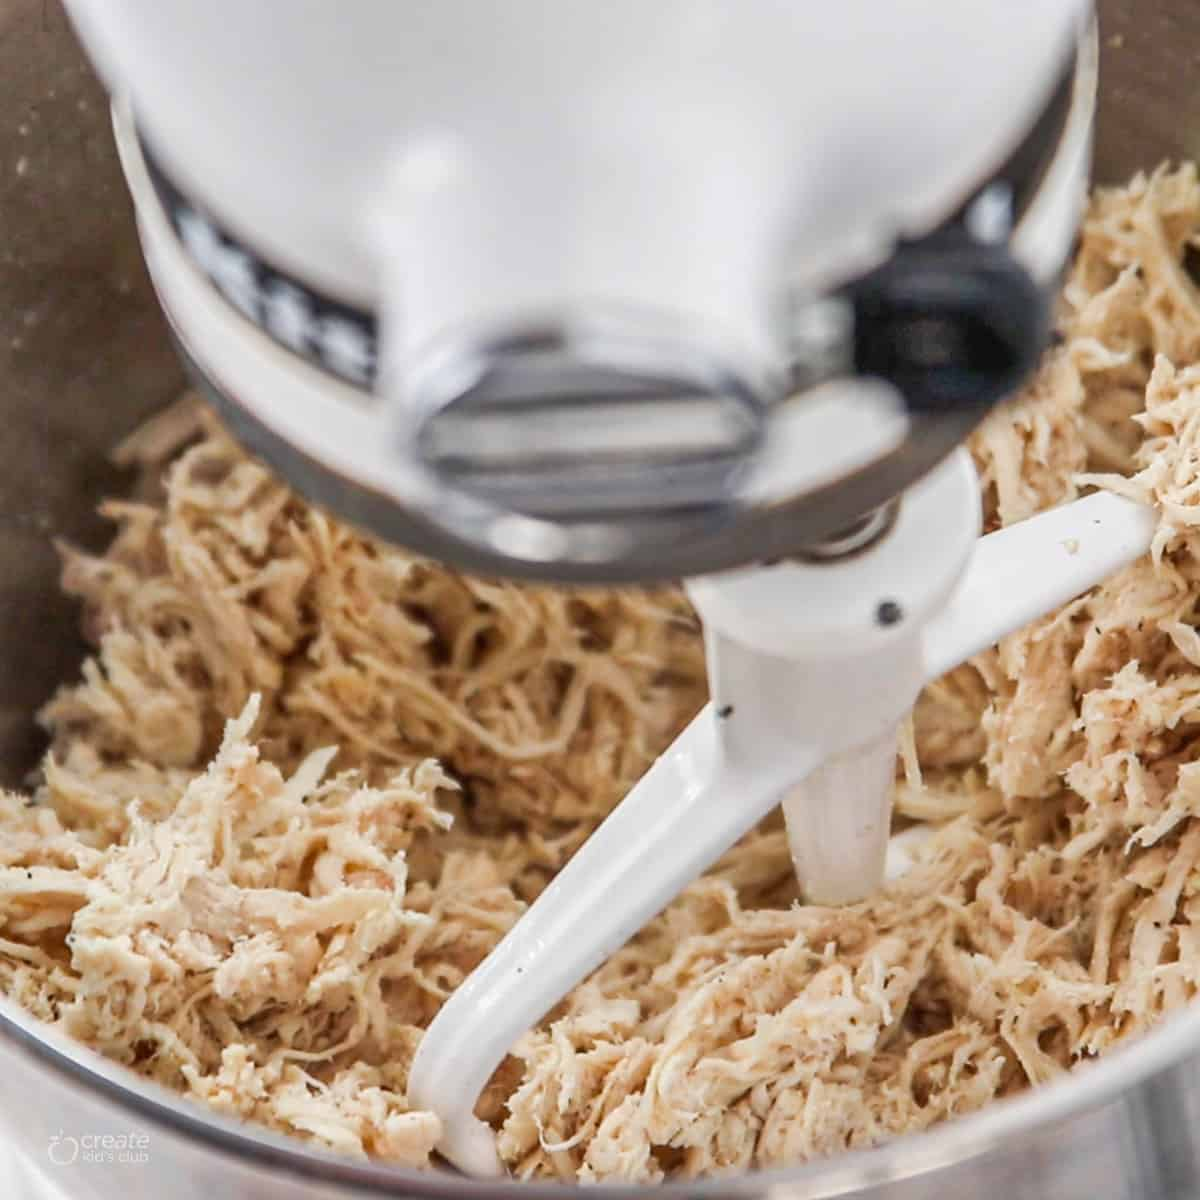 A close up of shredded chicken in a kitchenaid mixer being shredded.